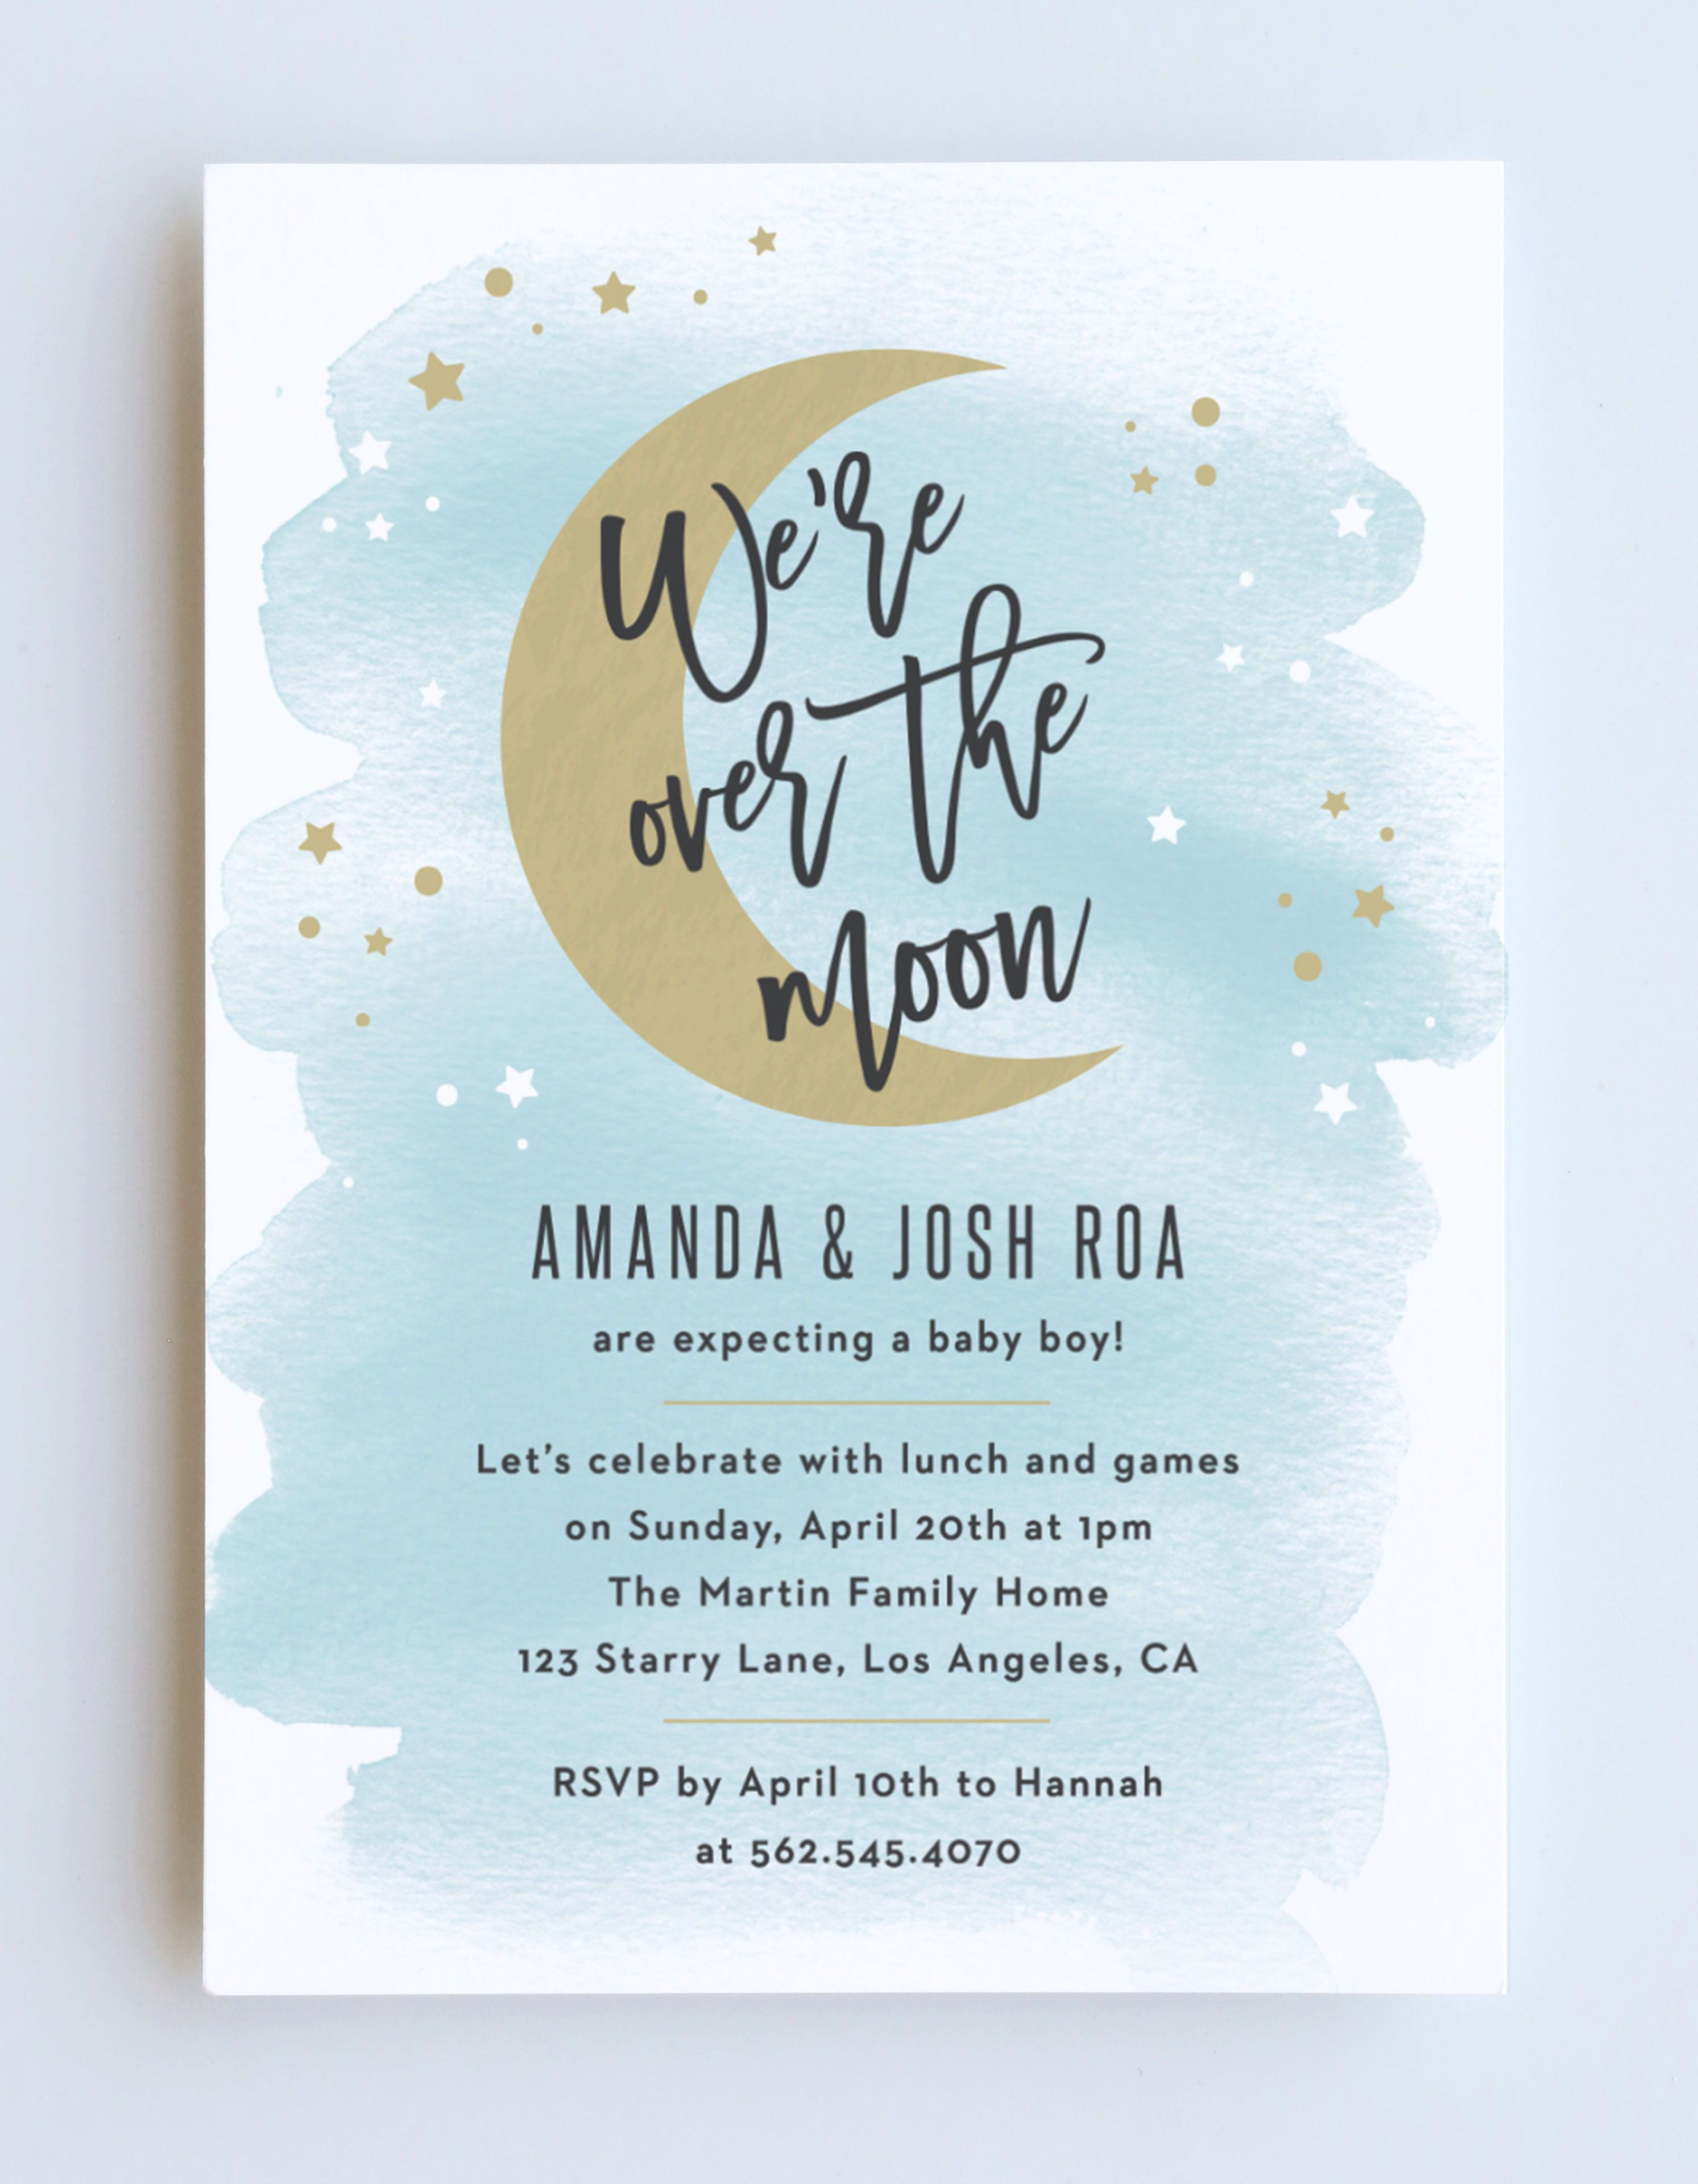 Over The Moon Baby Shower Invitations In 2021 Moon Baby Shower Invitation Boy Baby Shower Invitations Printable Blue Baby Shower Invitations